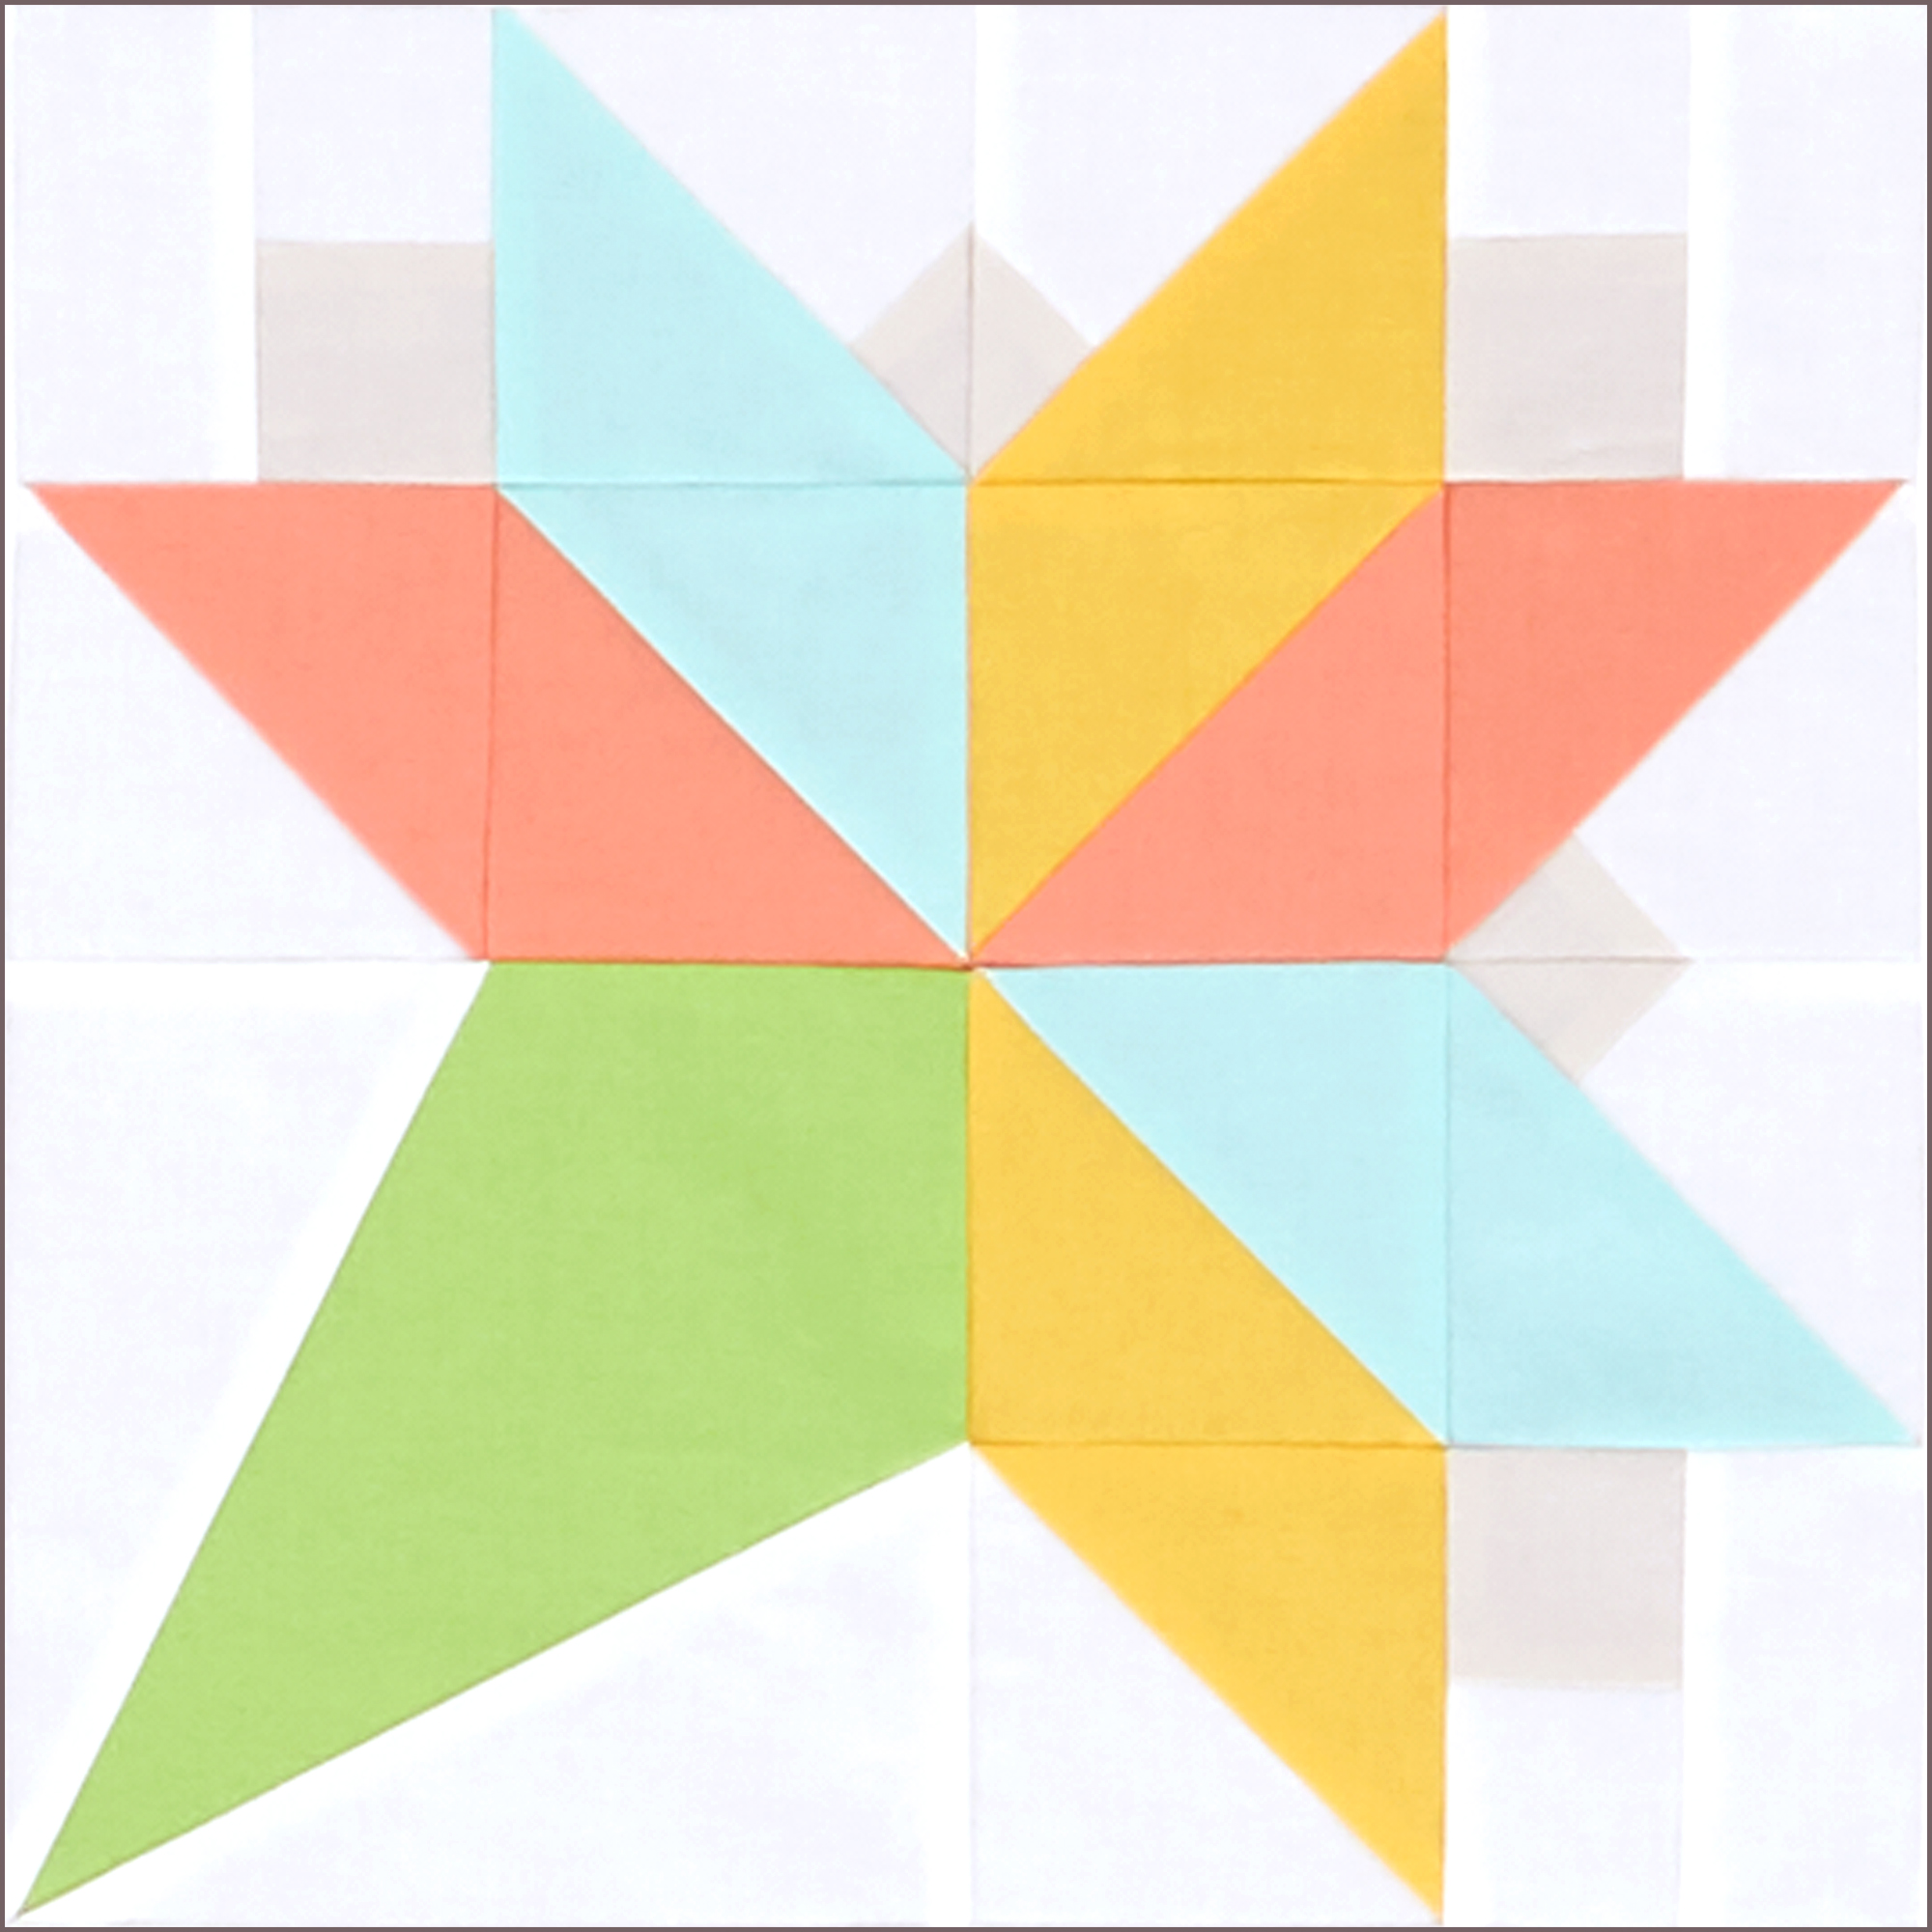 Bouquet quilt block in green, coral, yellow, and aqua